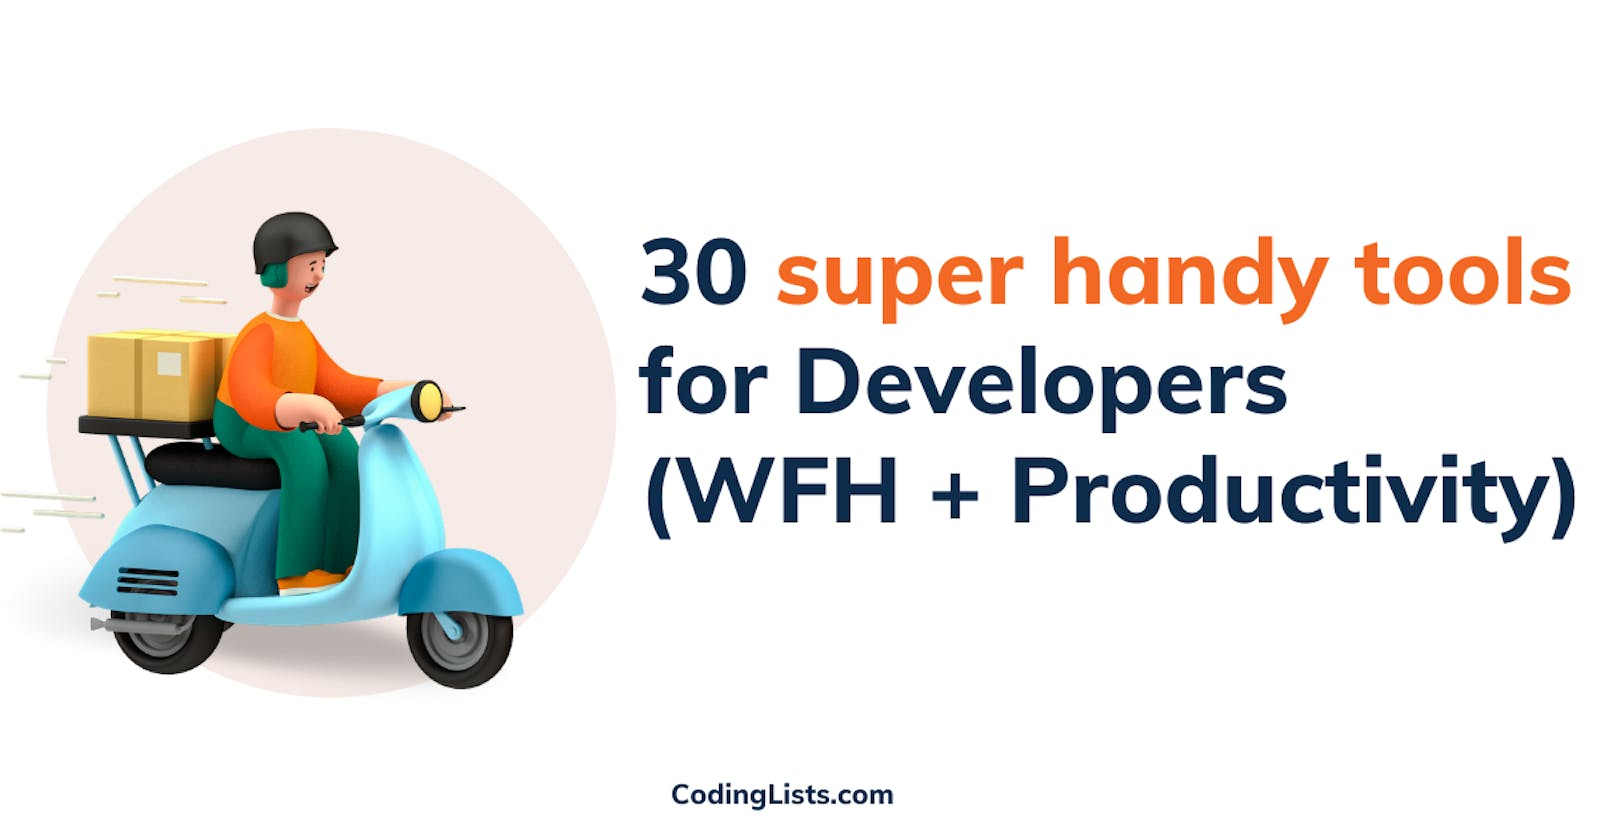 30 Super Handy tools for Developers (WFH + Productivity)